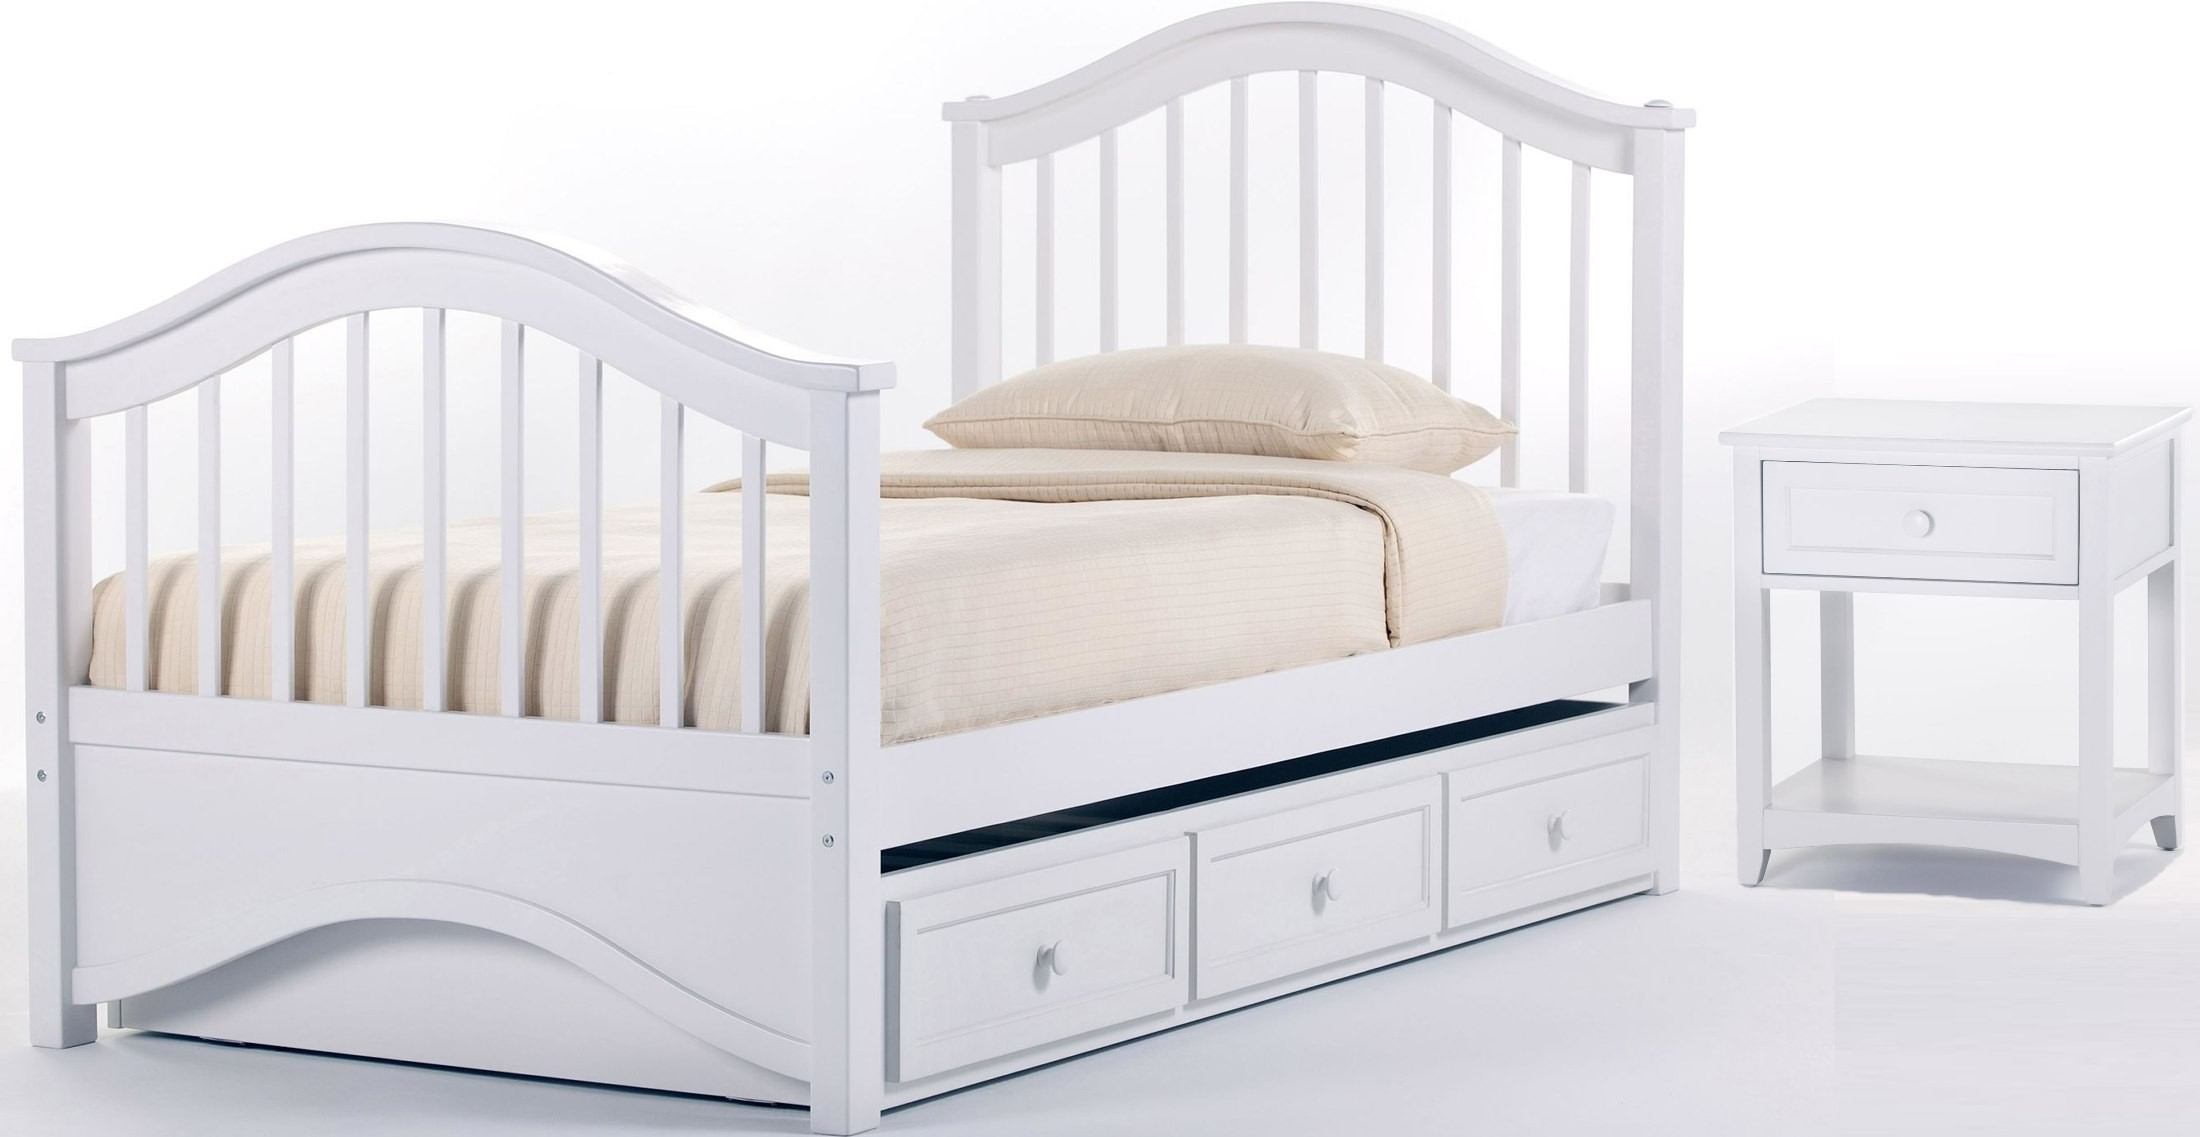 School house white jordan twin panel bed with trundle from ne kids coleman furniture White twin trundle bedroom set